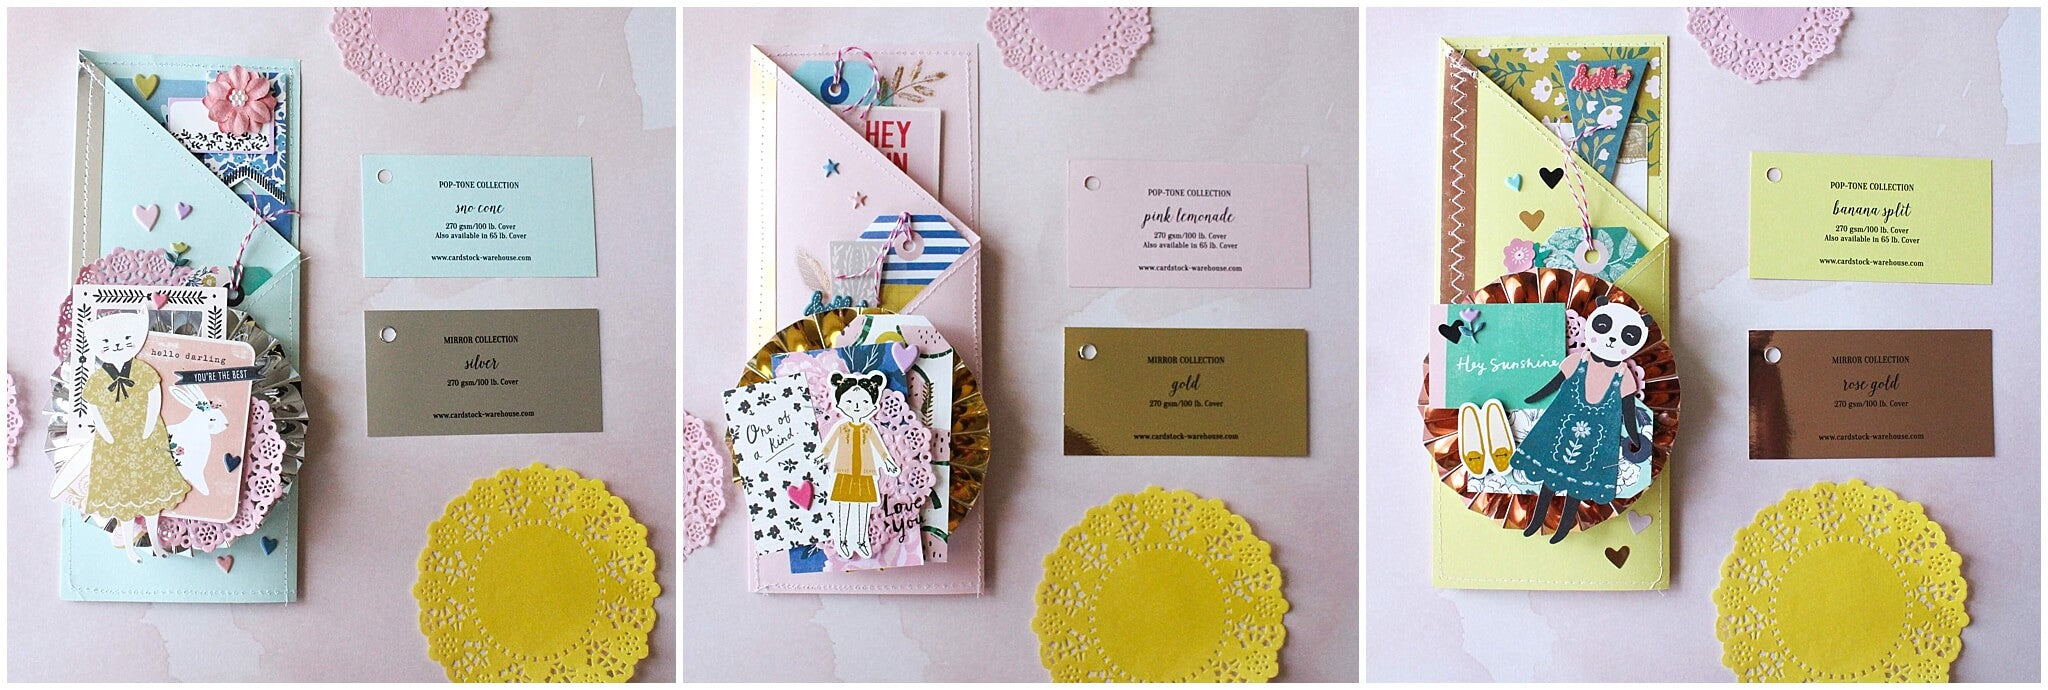 Tri-fold Mirror And Pastel Mothers Day Cards Swatches